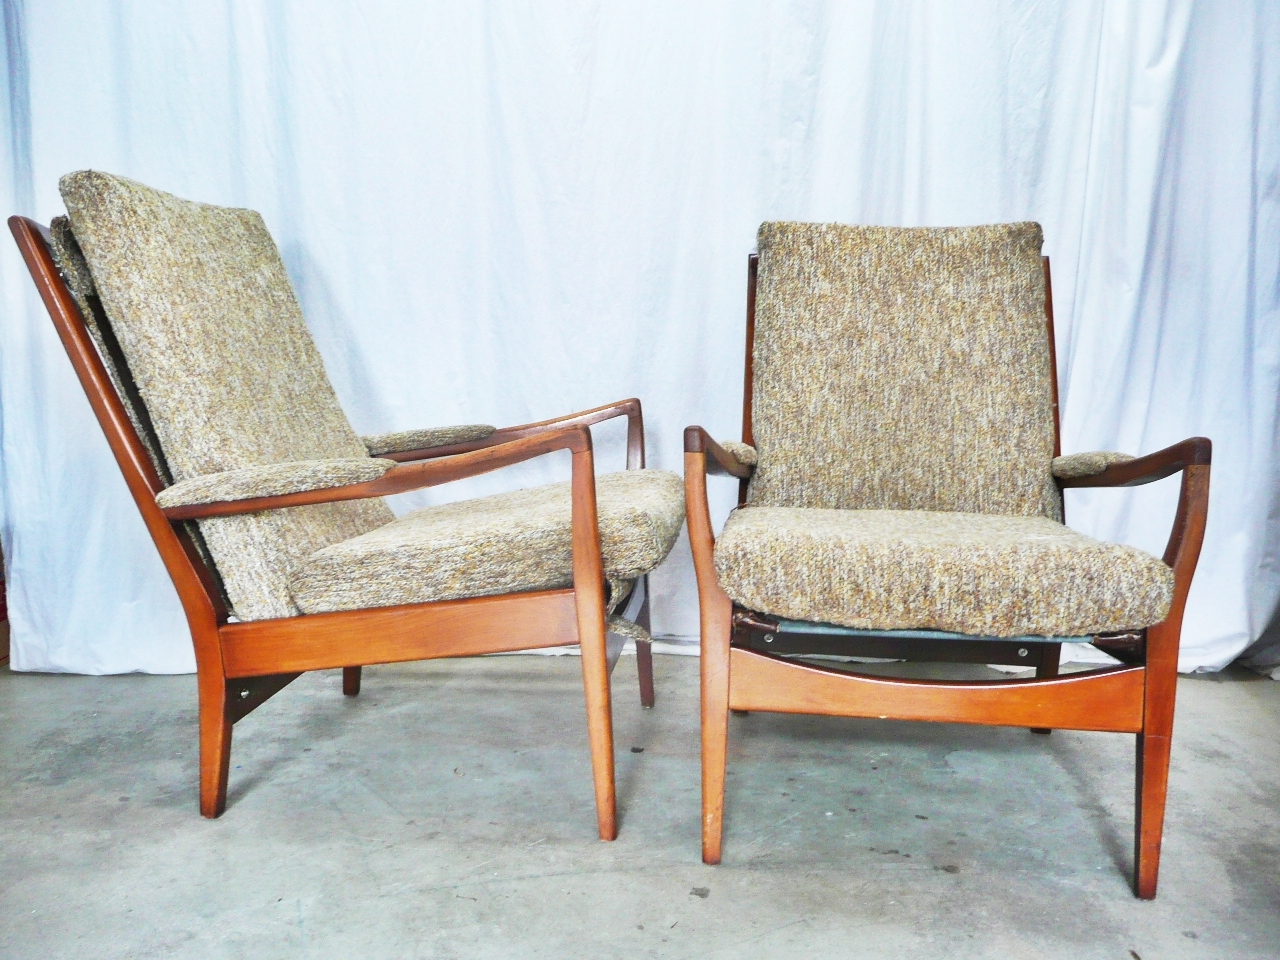 Stunning Common Cintique Fabric Chairs Pertaining To Modern Mid Century Danish Vintage Furniture Shop Used (View 3 of 15)